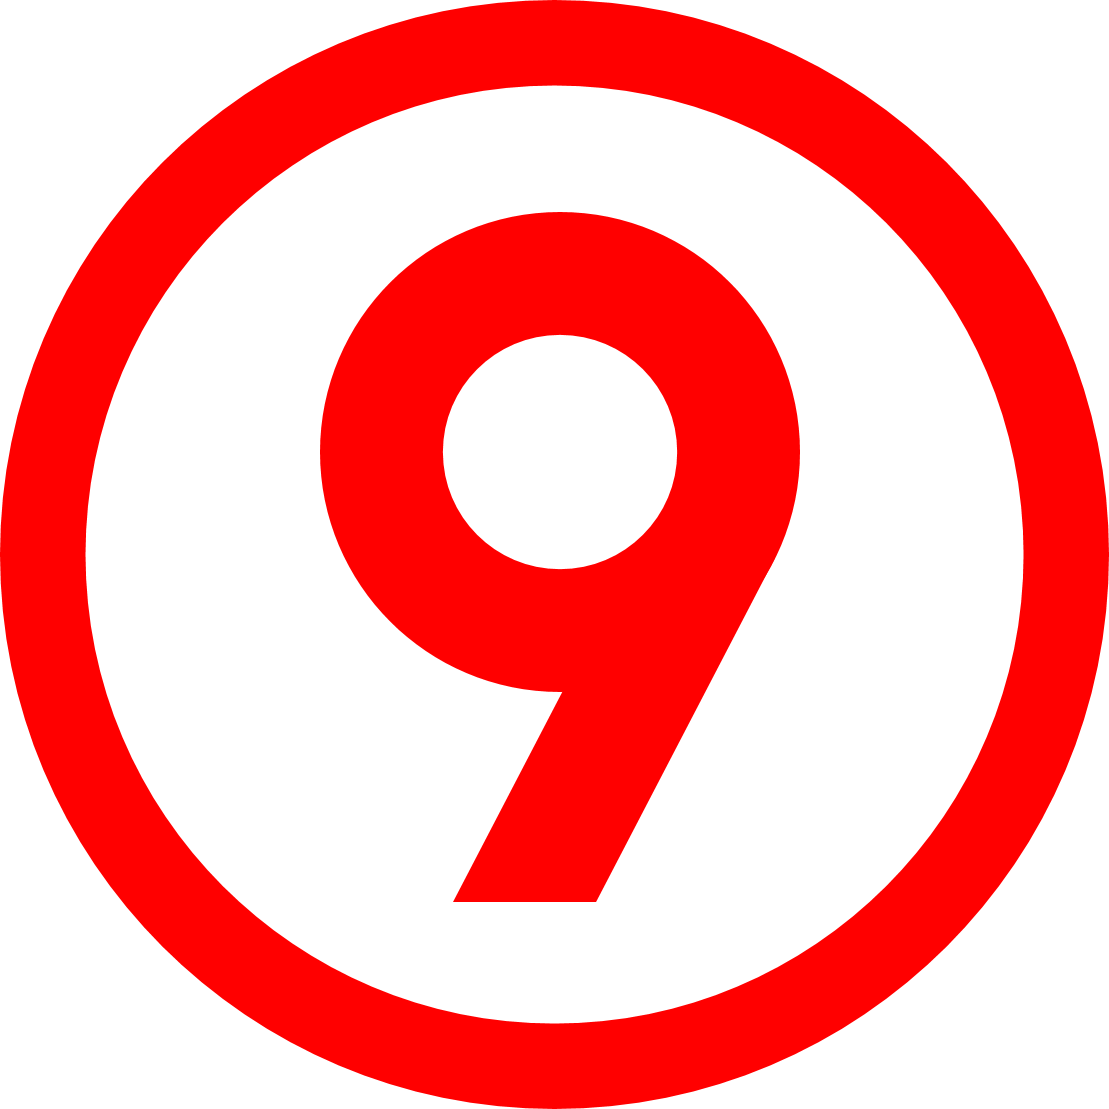 Canal9logo.png